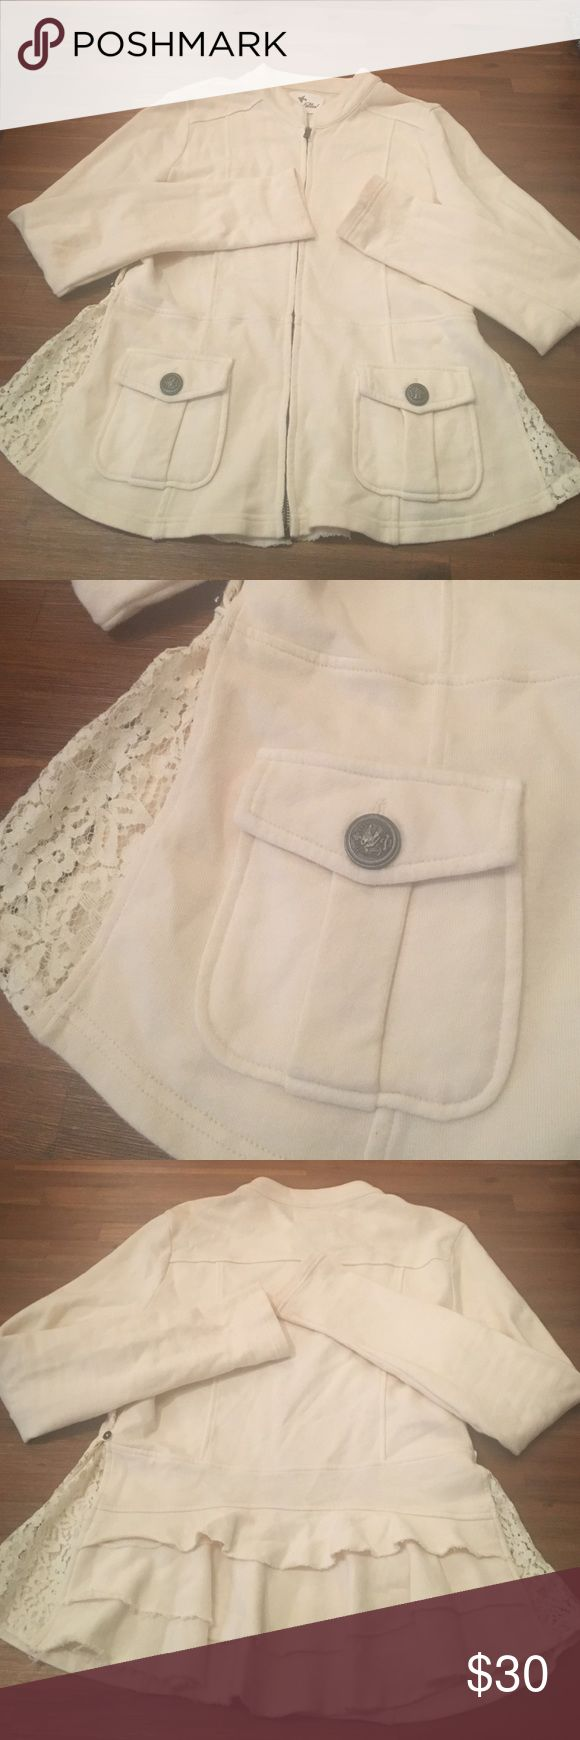 Beautiful Cream Zip up Jacket Size medium cream zip up jacket. Beautiful pocket detail on the front. Zip up. Adjustable buttons on the side with lace detail. Peplum detail on the back. 24 inches in length and 16 inches on the bust. No stains or tears. In excellent condition. Smoke free home. 100% cotton. Others Follow Jackets & Coats